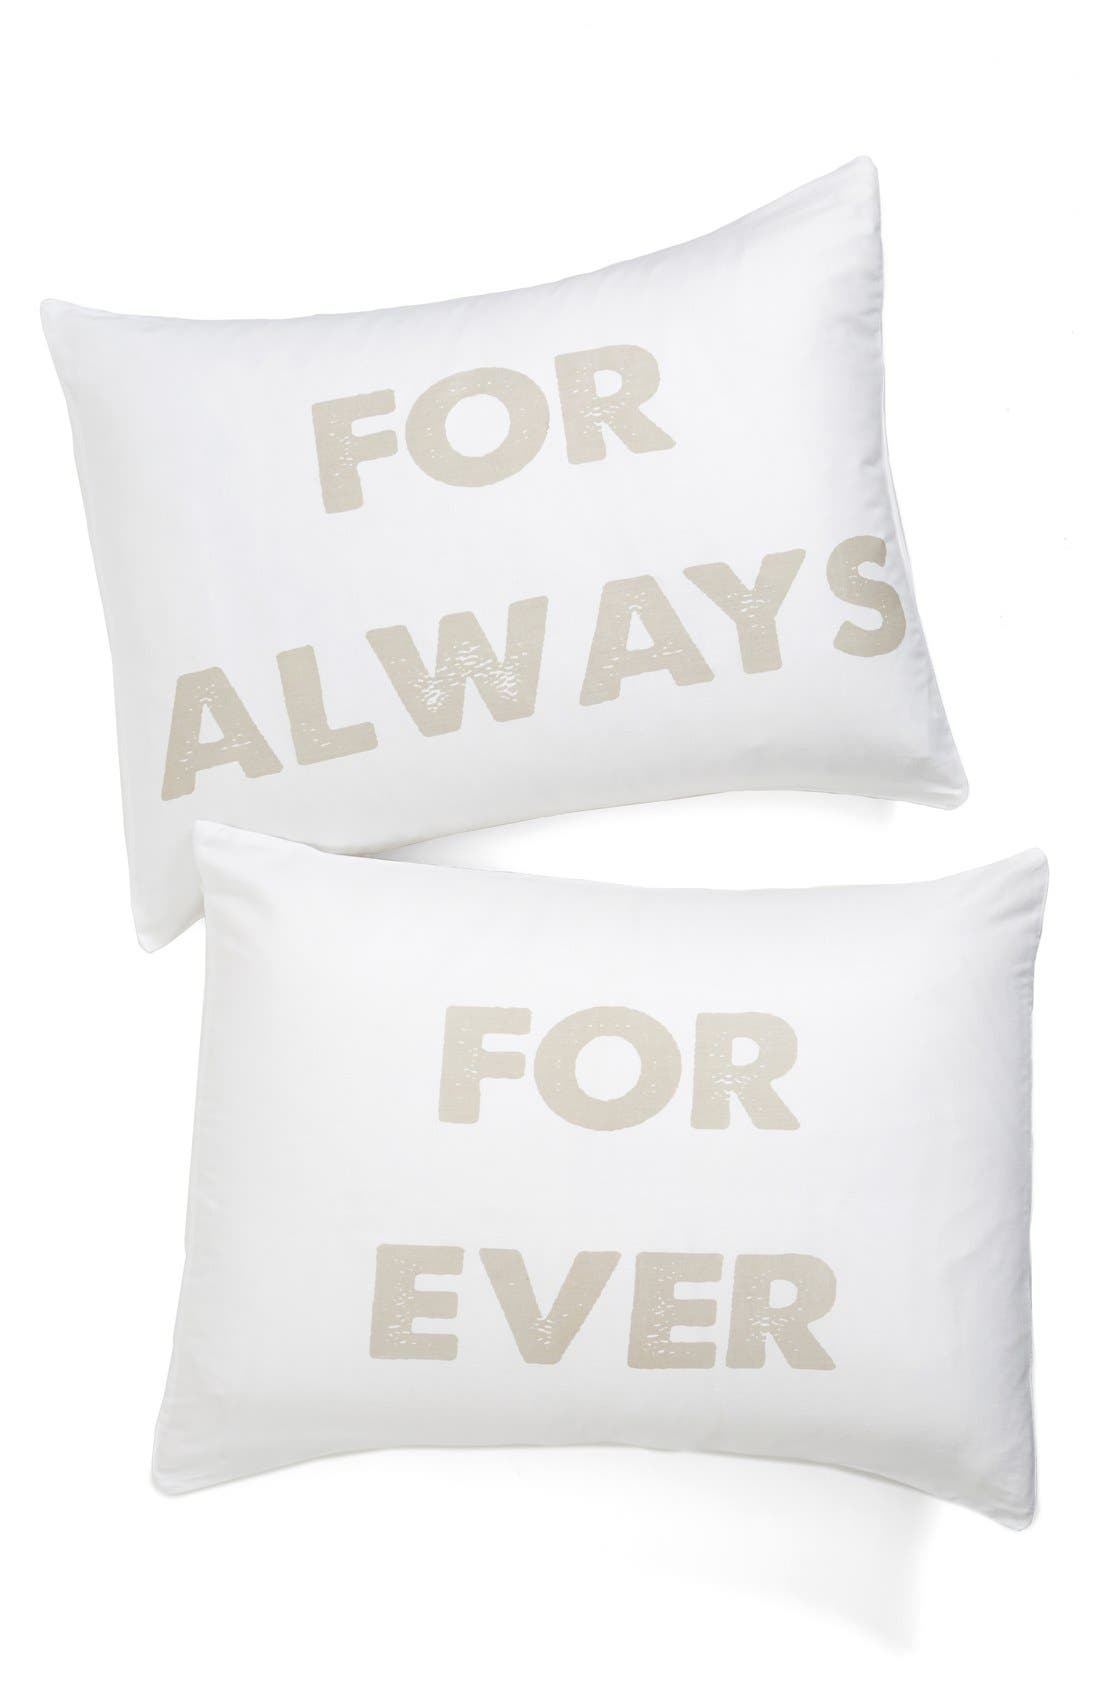 Main Image - Levtex 'For Always/For Ever' Pillowcases (Set of 2)